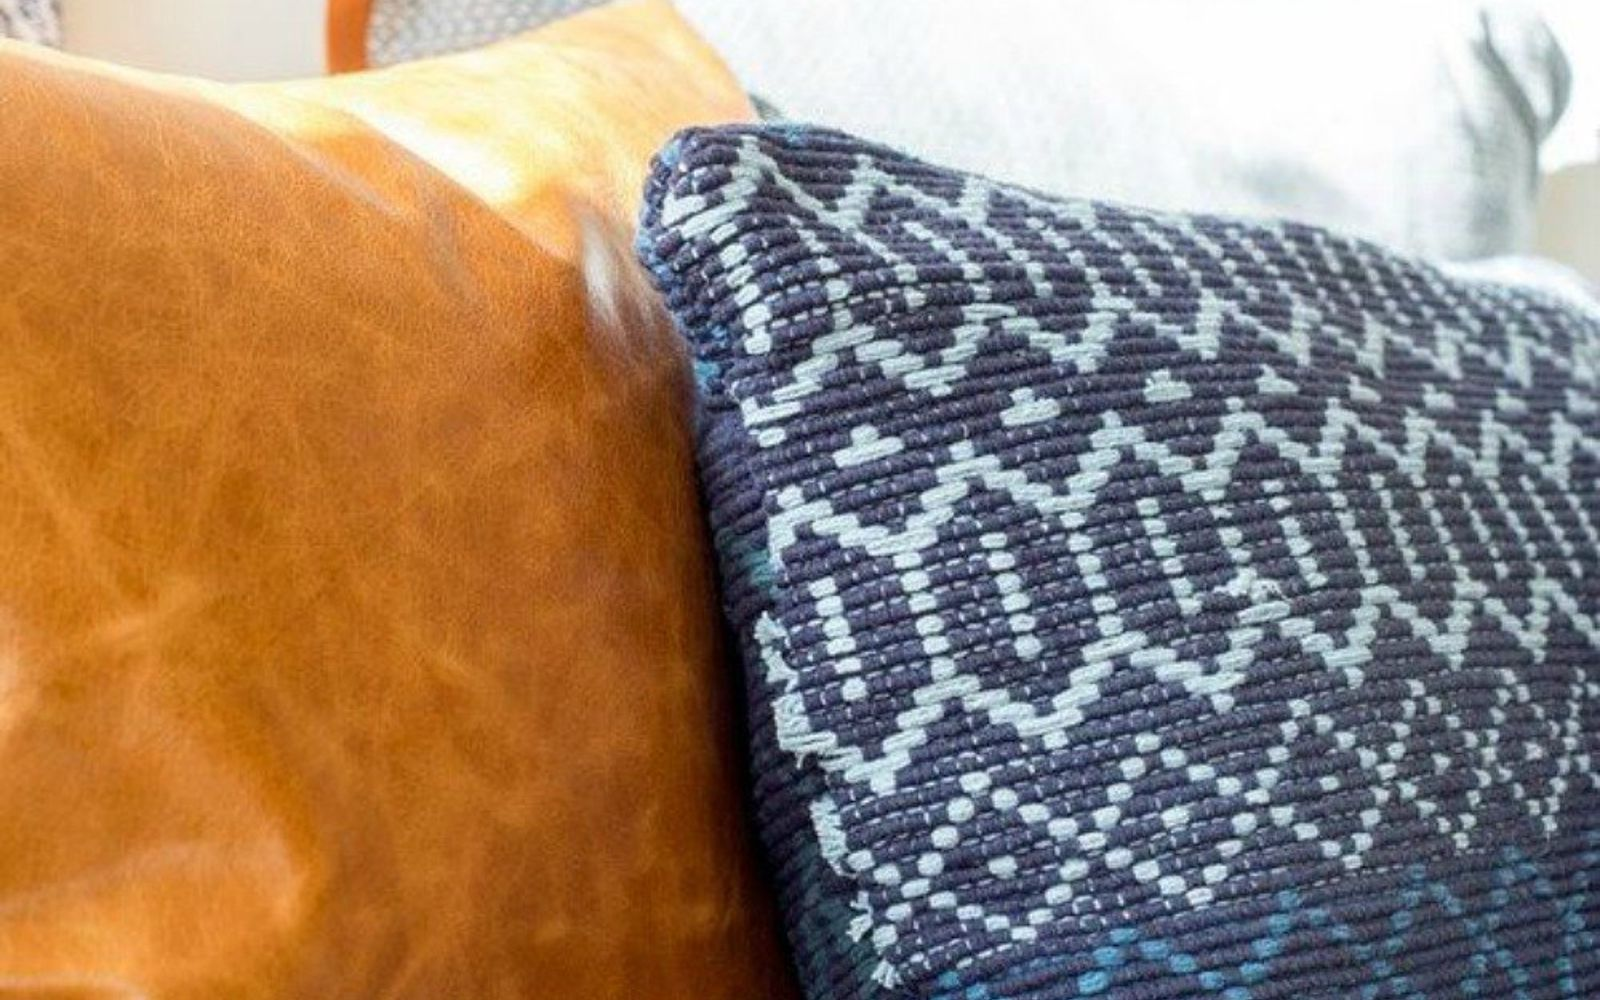 s decorate your living room for under 10 with these 15 ideas, Turn a Dollar Store accent rug into a pillow